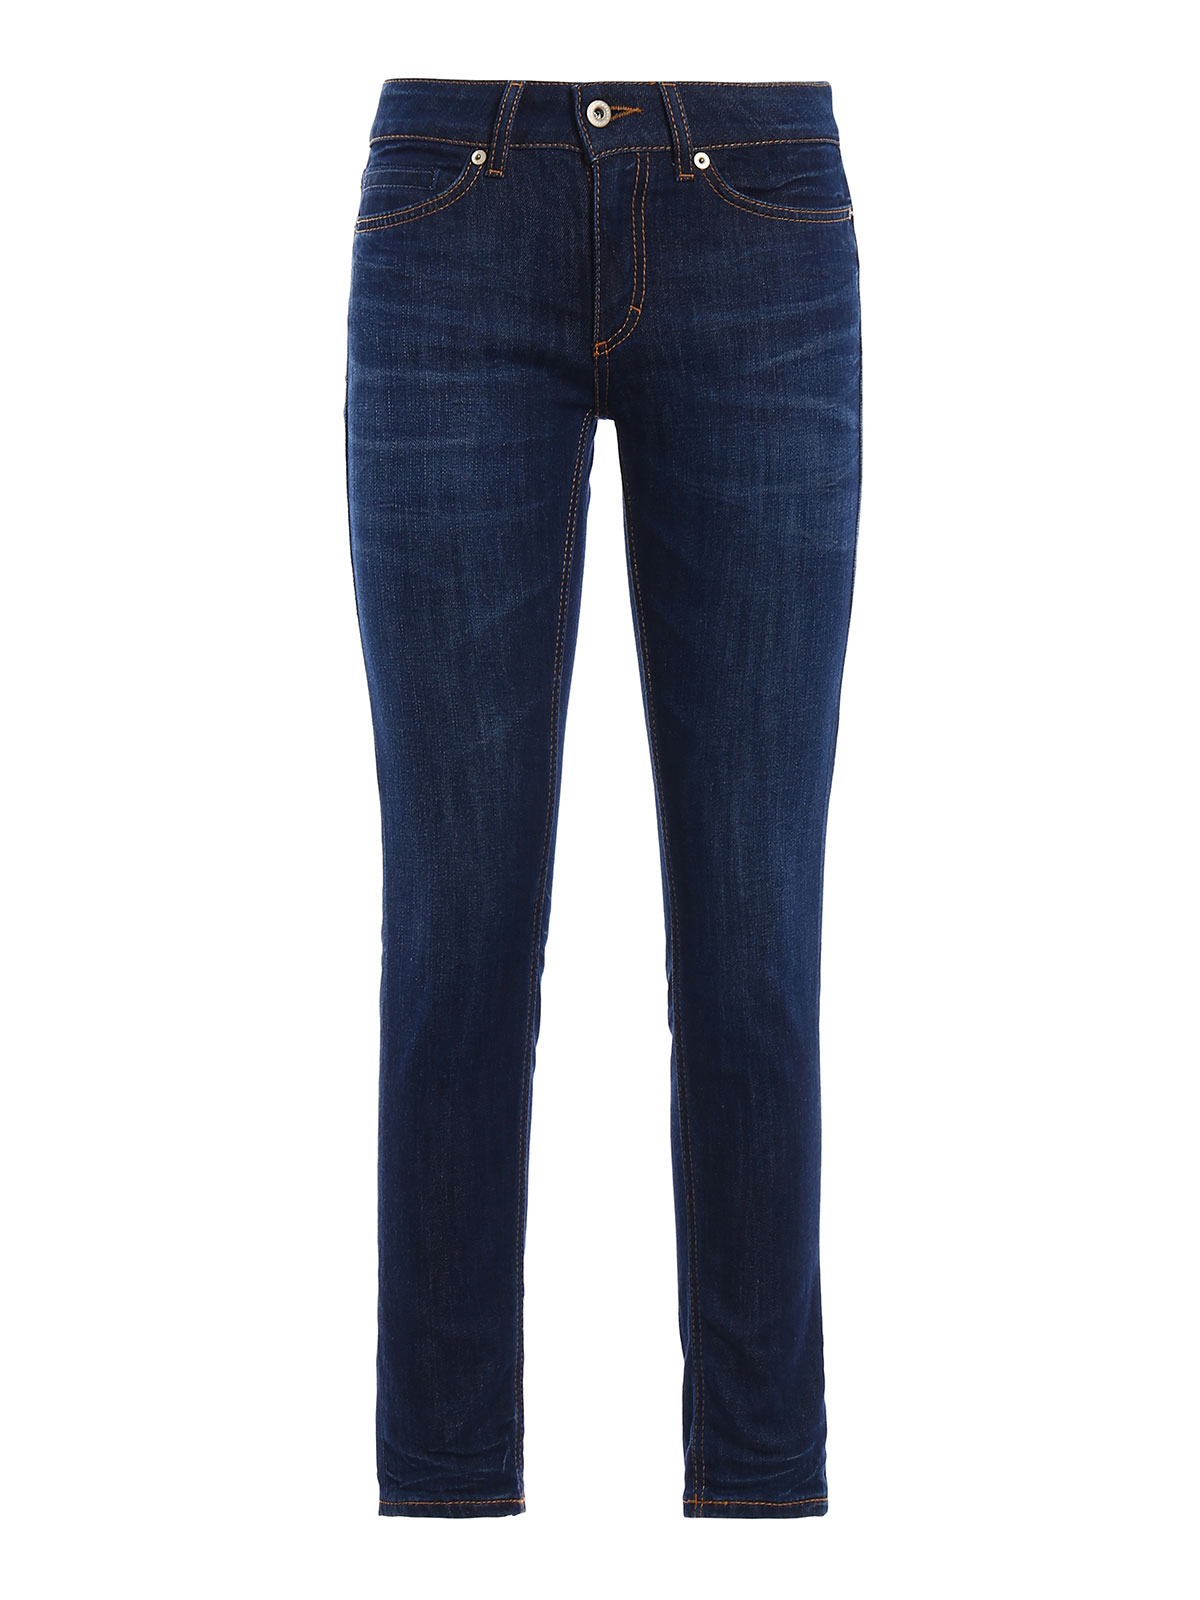 gaynor skinny low waisted jeans by dondup skinny jeans. Black Bedroom Furniture Sets. Home Design Ideas